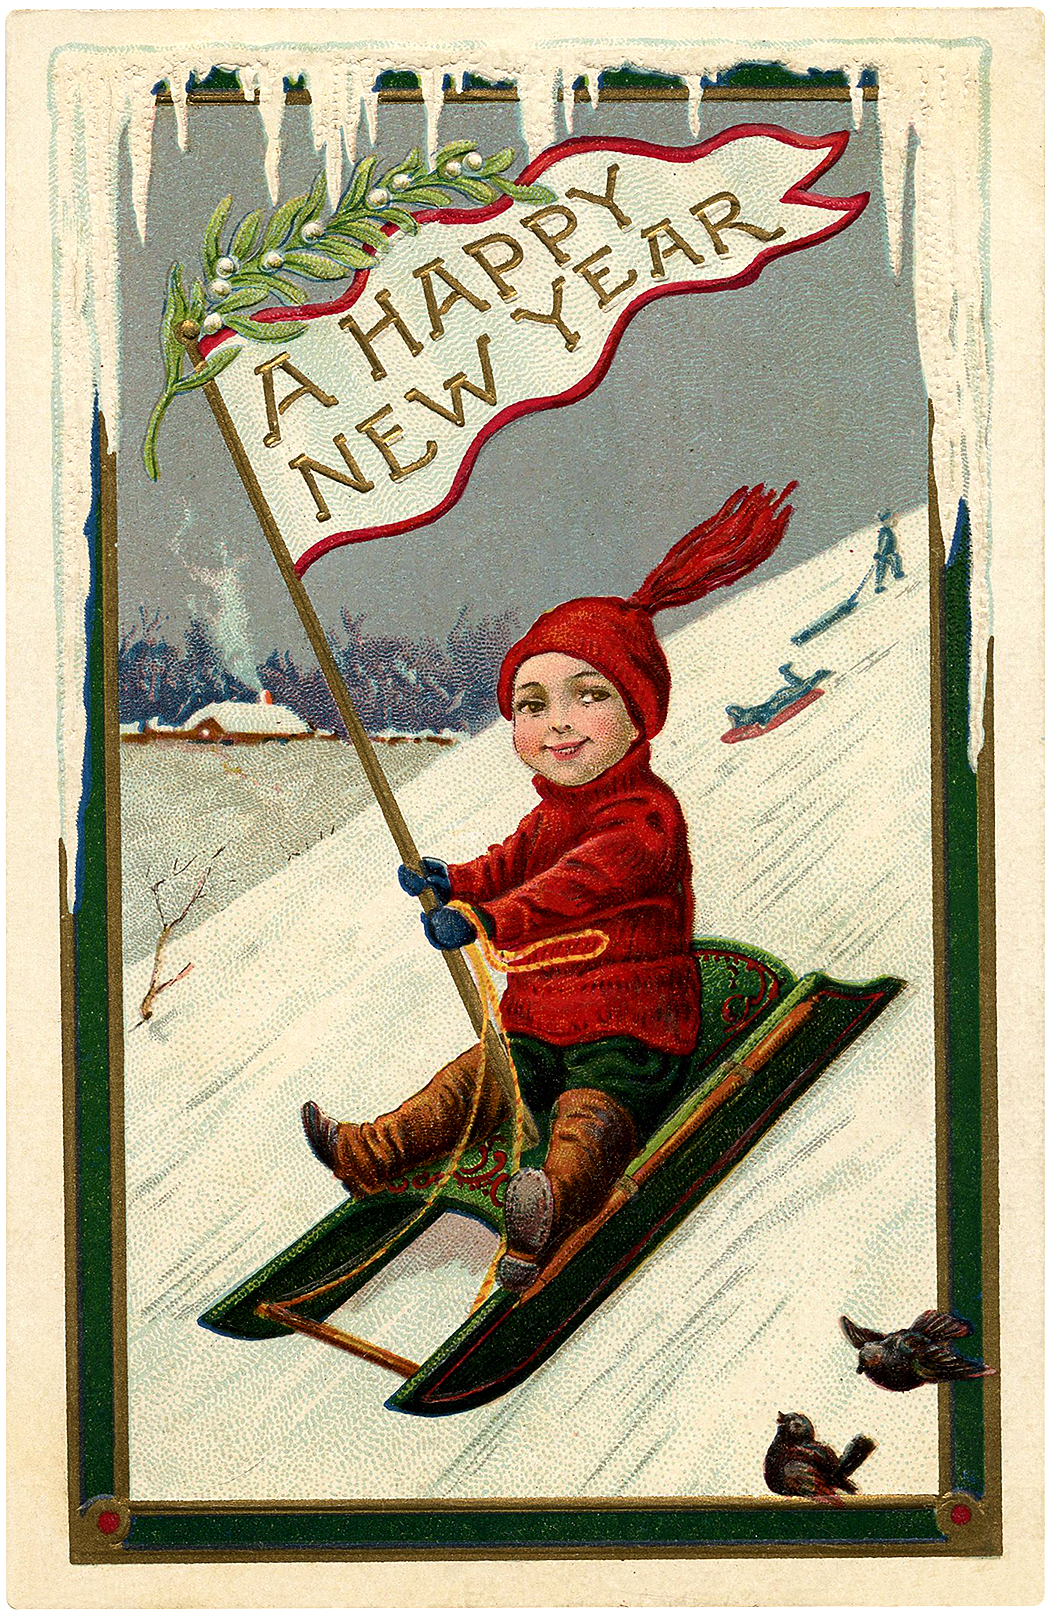 Vintage New Year Sled Boy Image